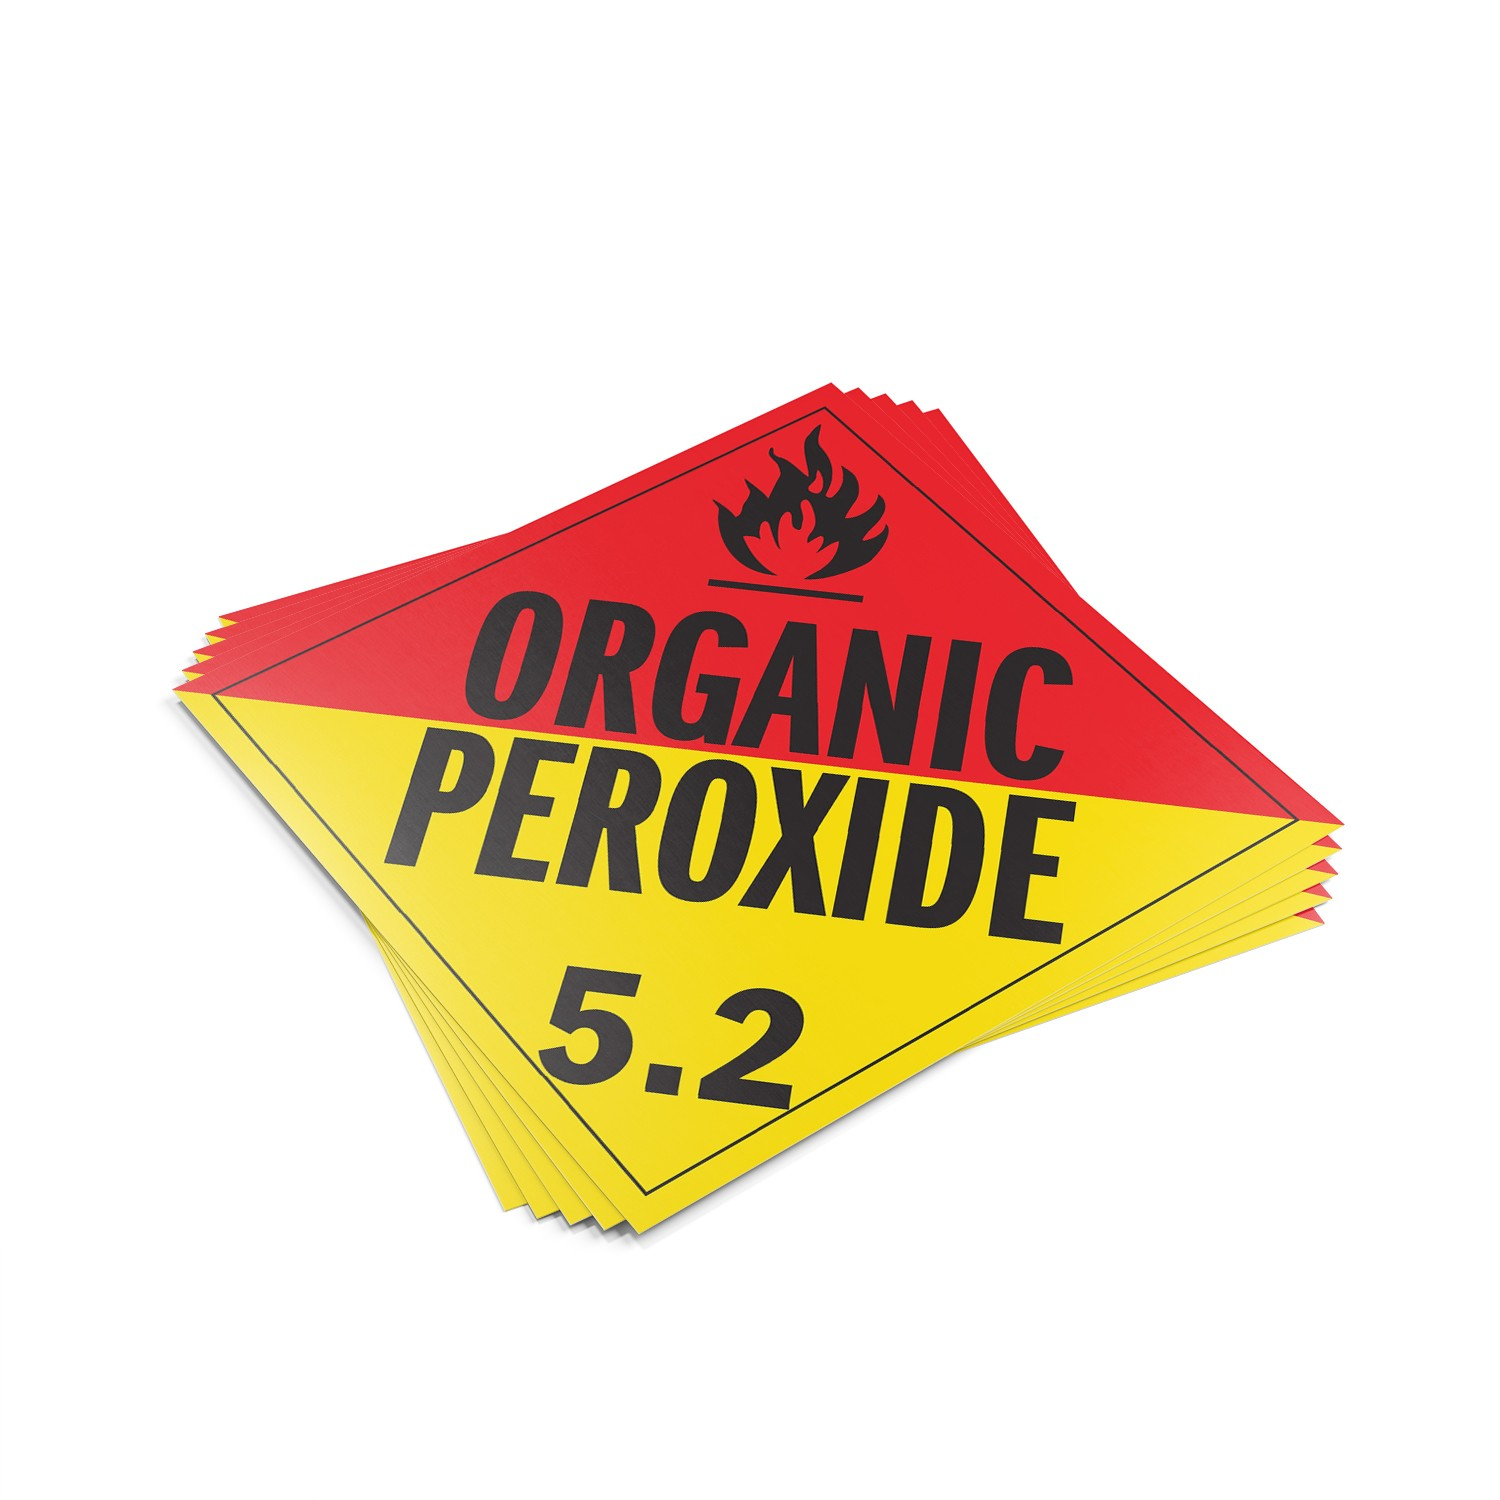 "TOTALPACK® 10 3/4 x 10 3/4"" - Placard ""Organic Peroxide #5.2"" Red Yellow 25 Units"